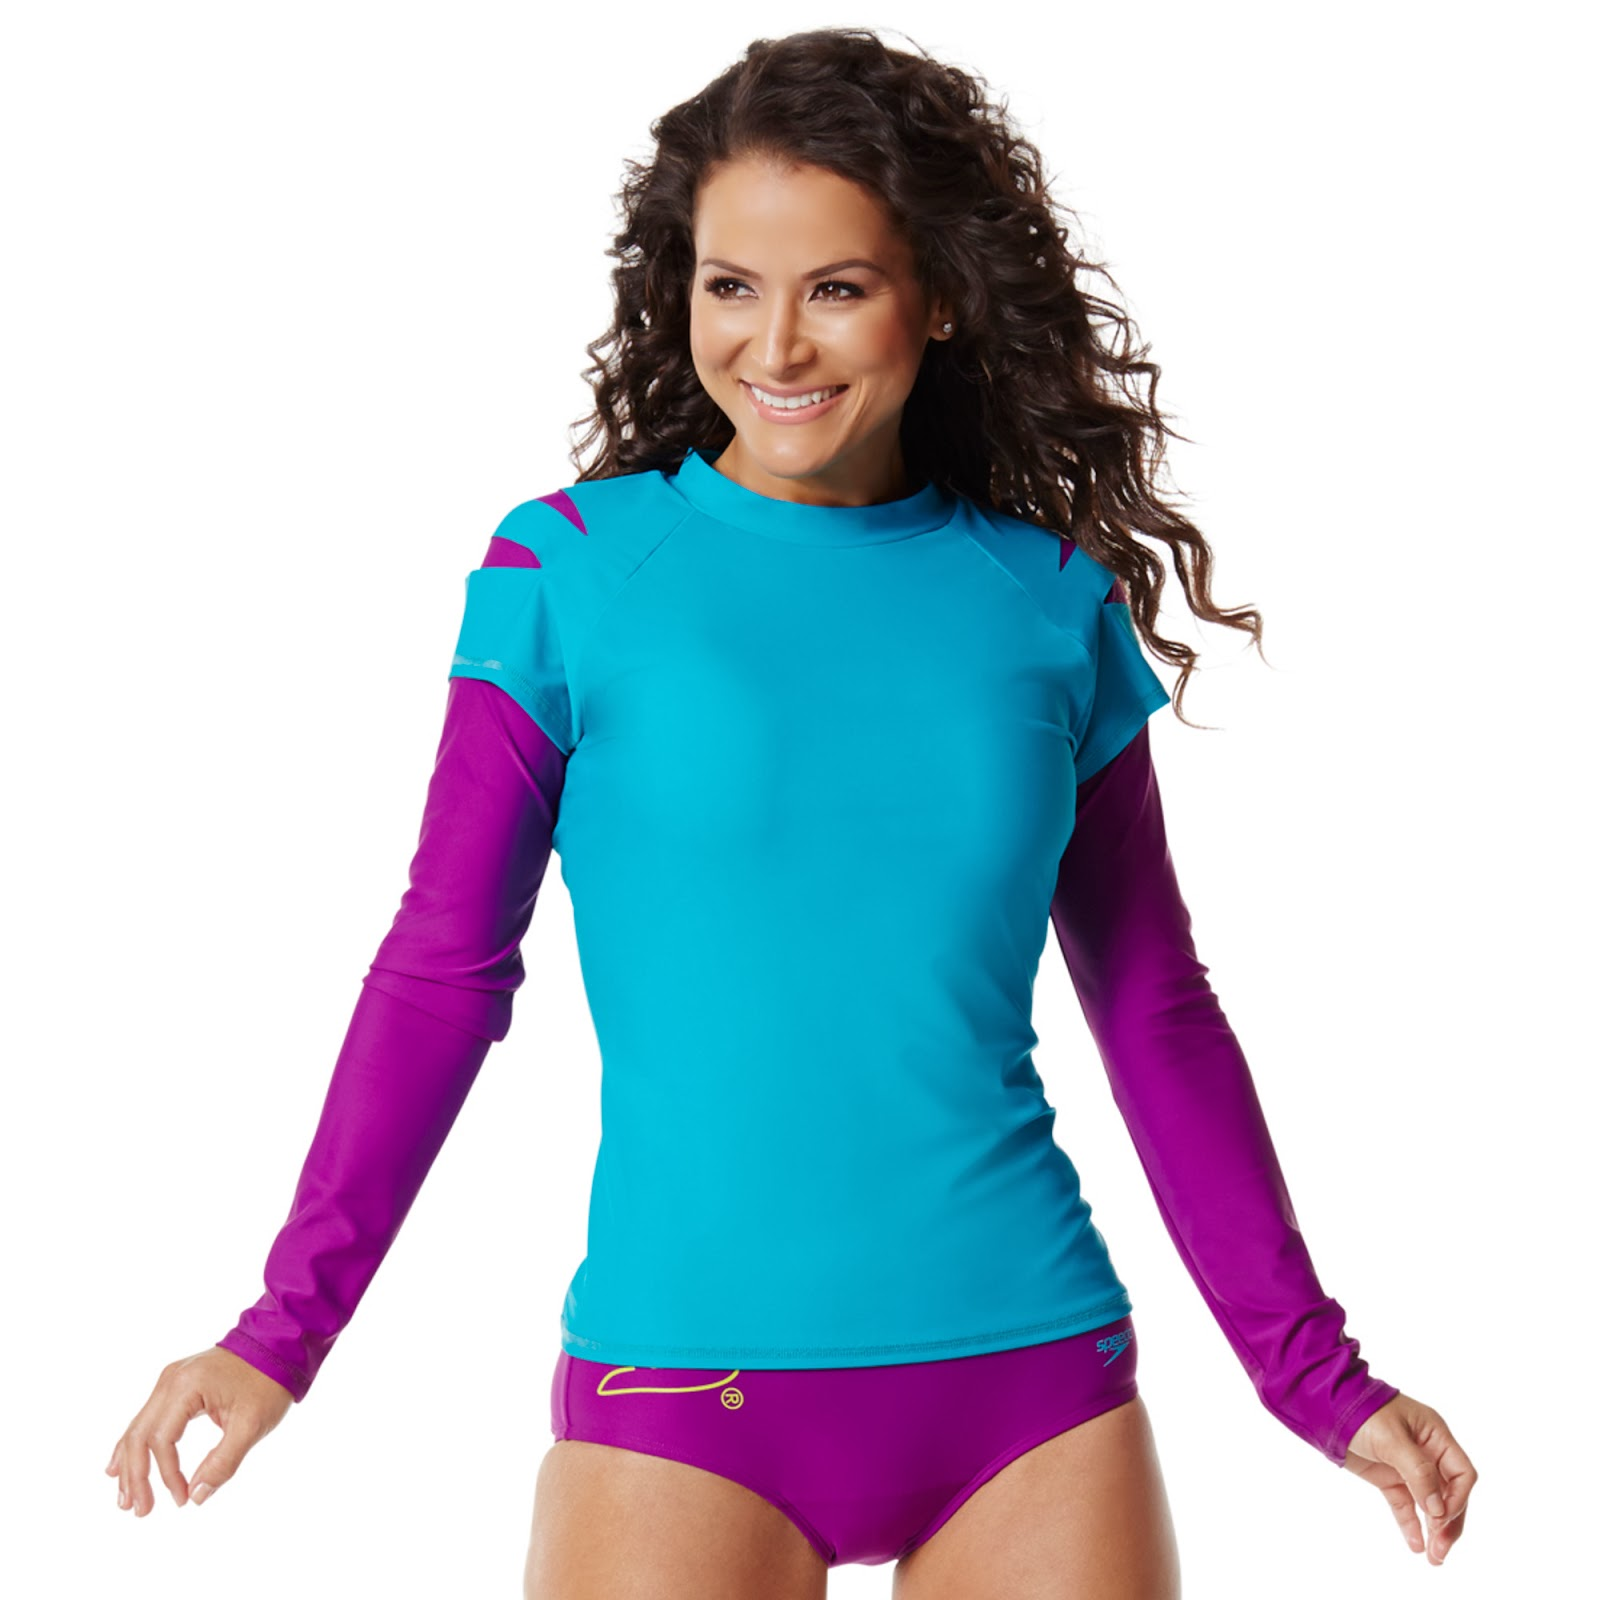 http://www.zumba.com/en-US/store-zin/US/product/slash-o-rama-rashguard?color=Tropical+Teal